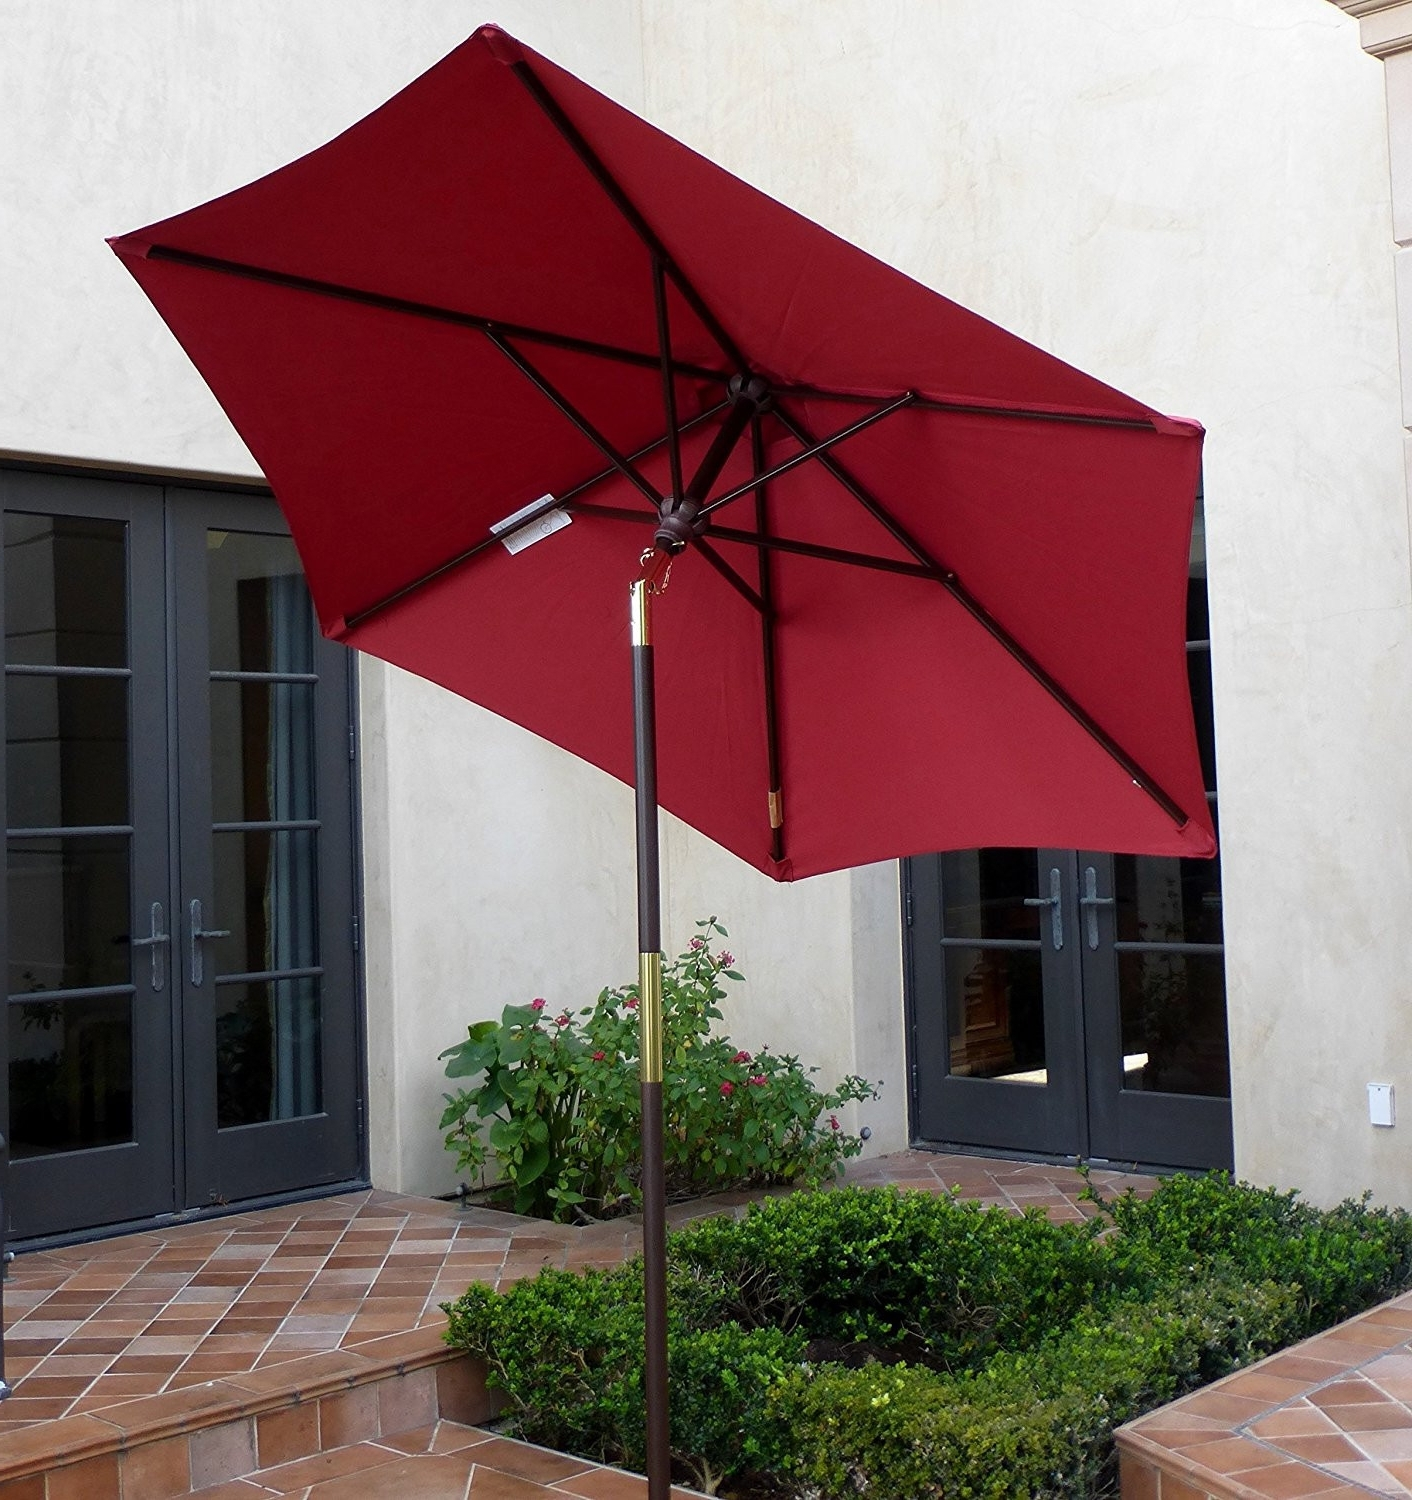 Commercial Outdoor Umbrellas Elegant Best For High Wind Areas This Intended For Well Liked Patio Umbrellas For High Wind Areas (View 4 of 20)